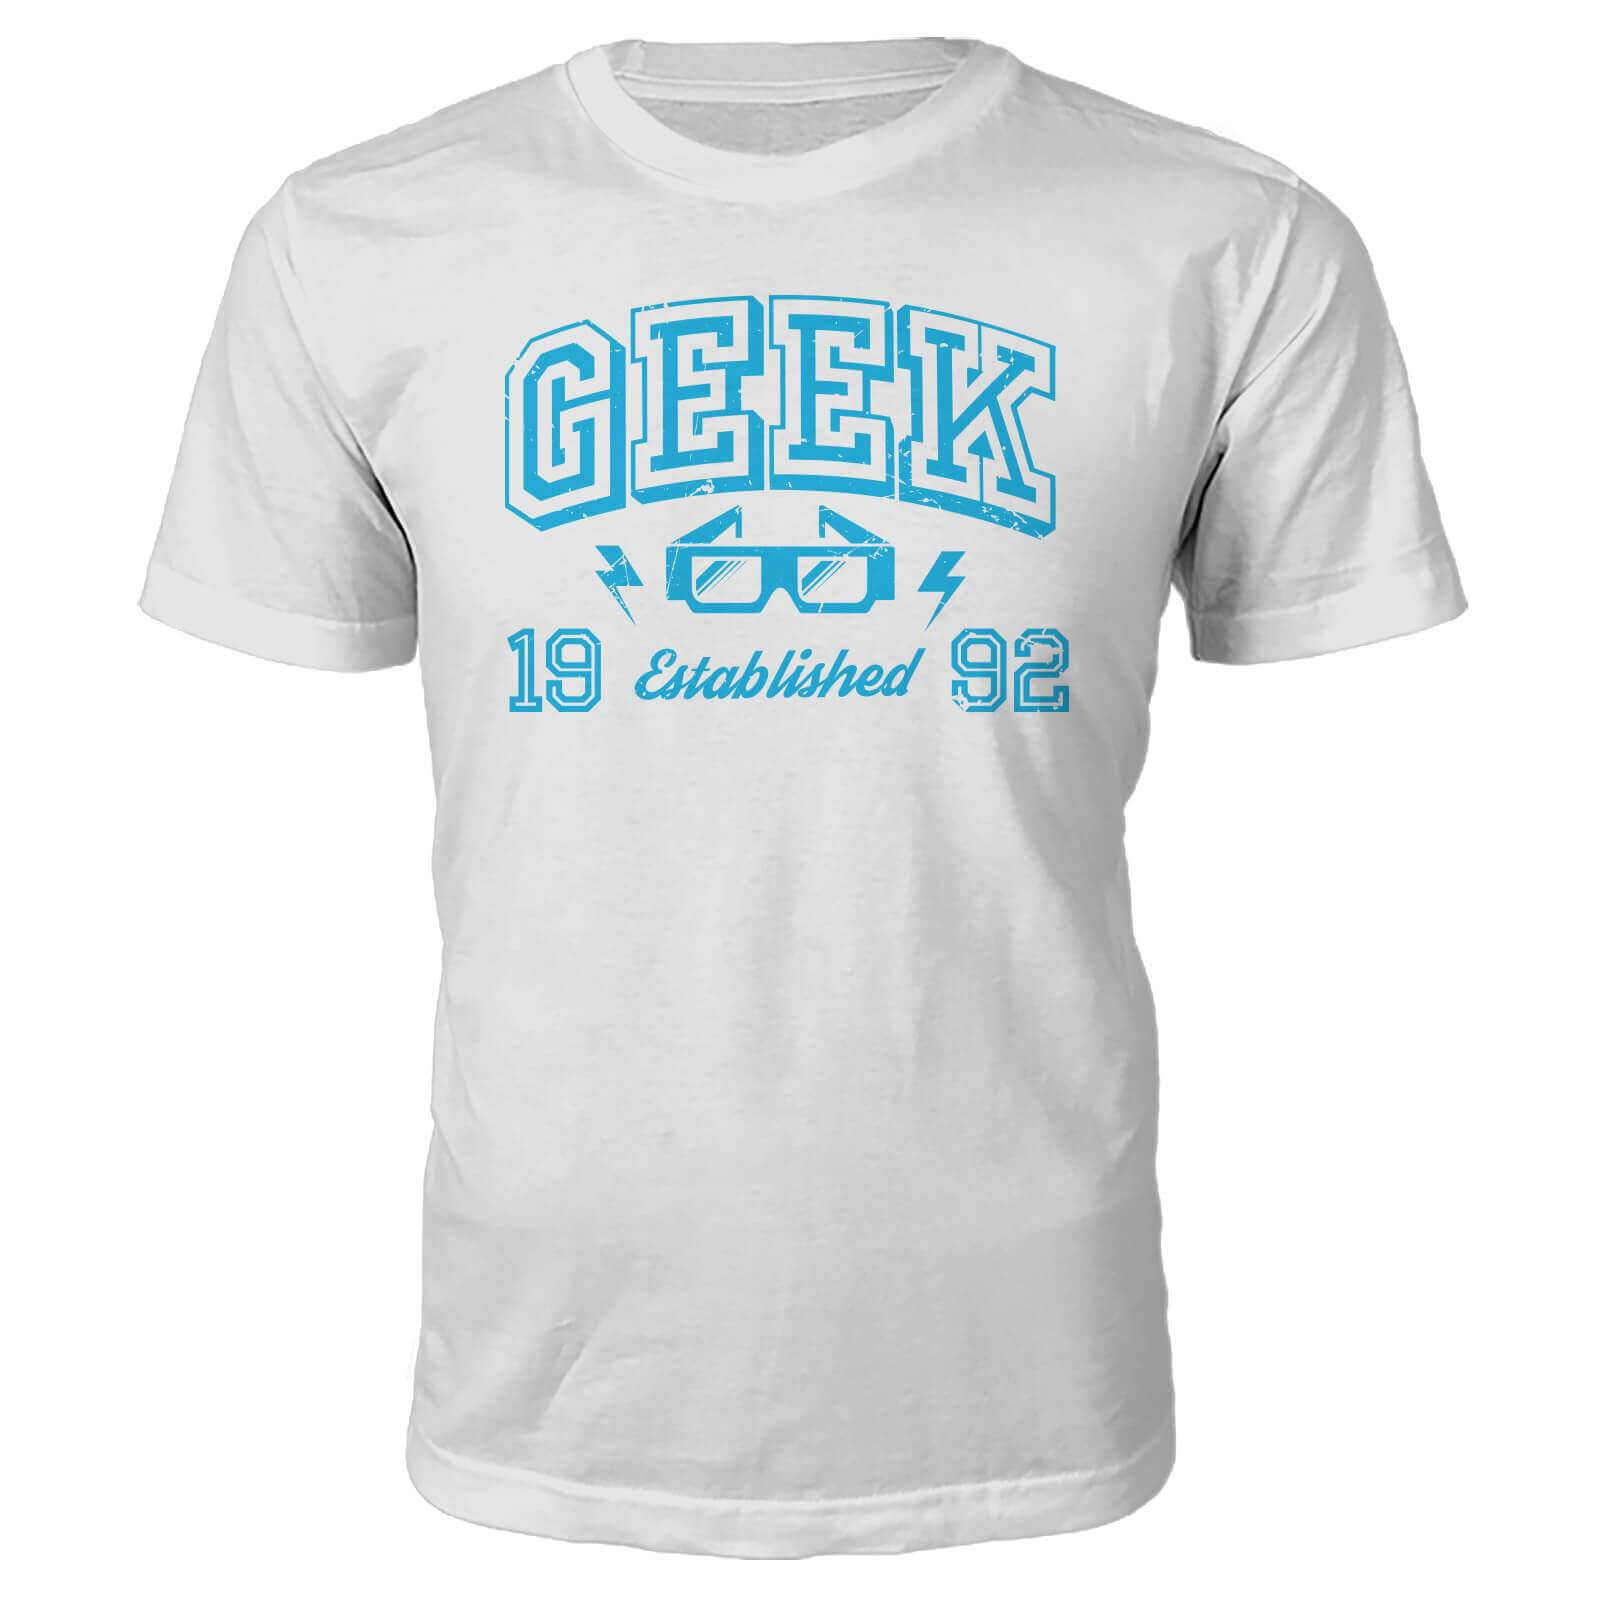 The Geek Collection Geek Established 1990's T-Shirt- White - S - 1992